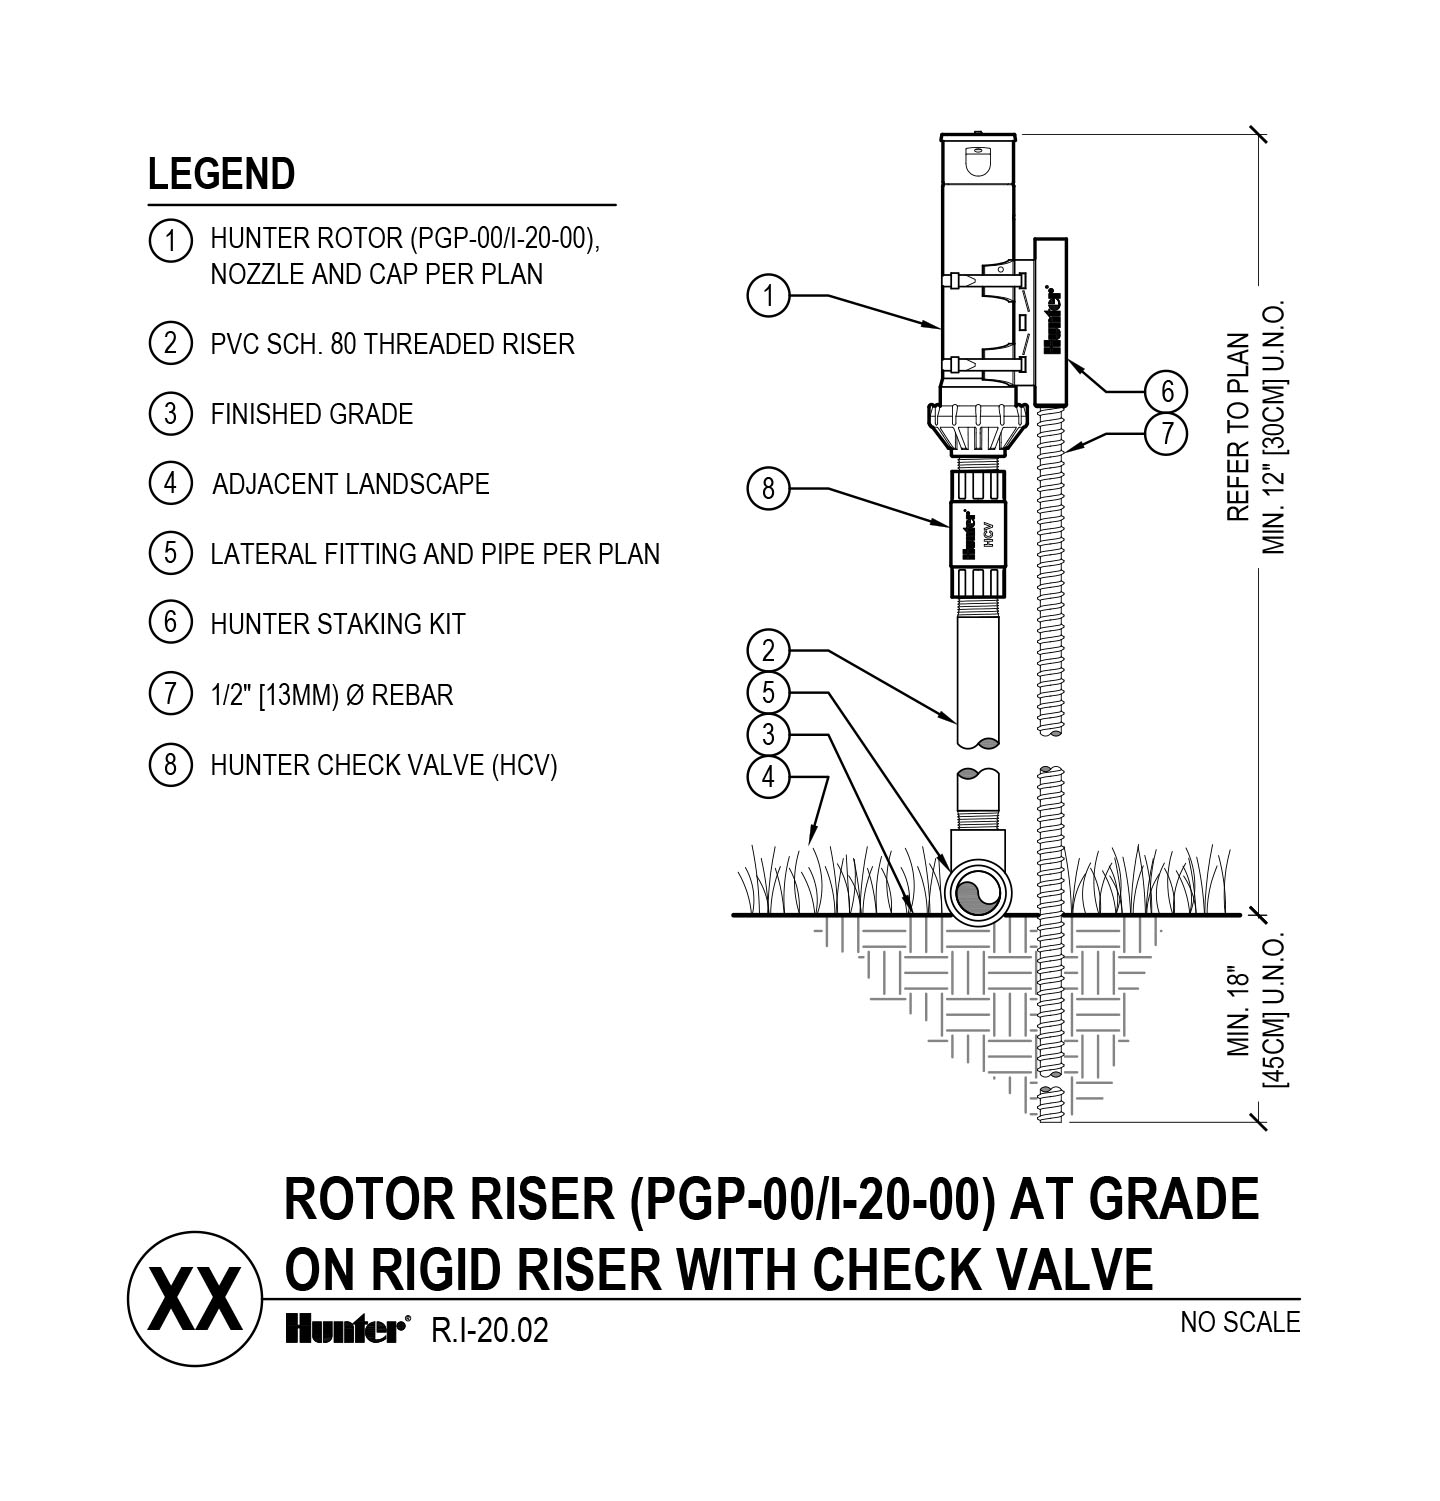 cad - i-20-00 pgp-00 on grade with rigid riser and check valve